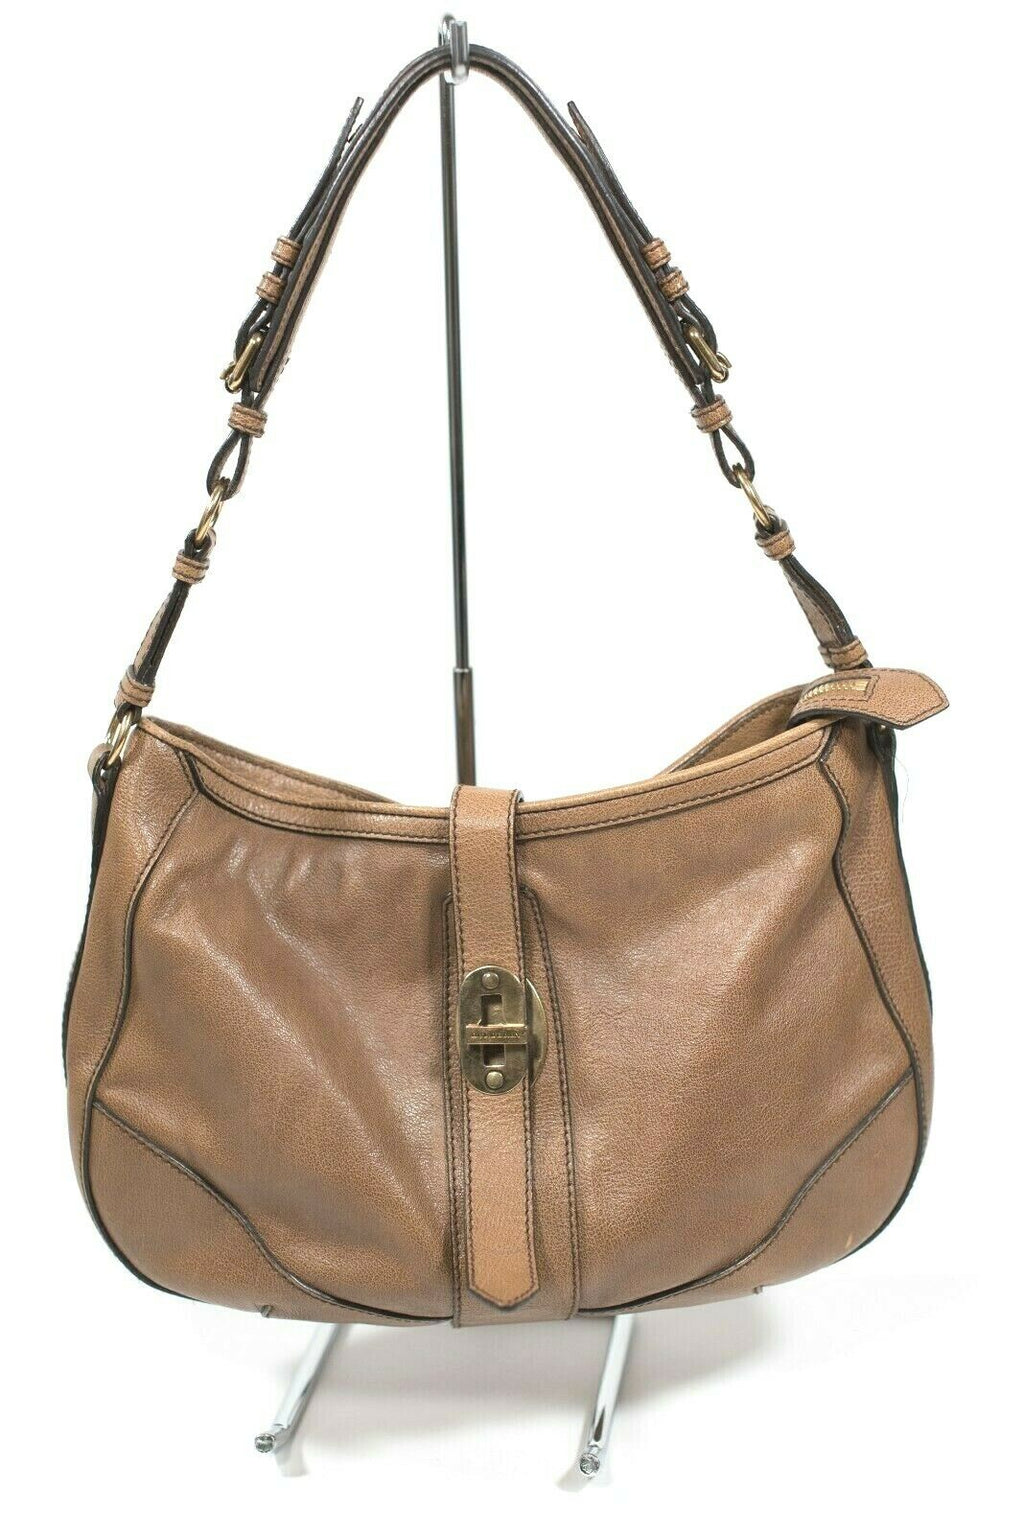 Burberry Weatherby Womens Brown Buffalo Leather Hobo Purse Handbag Shoulder Bag